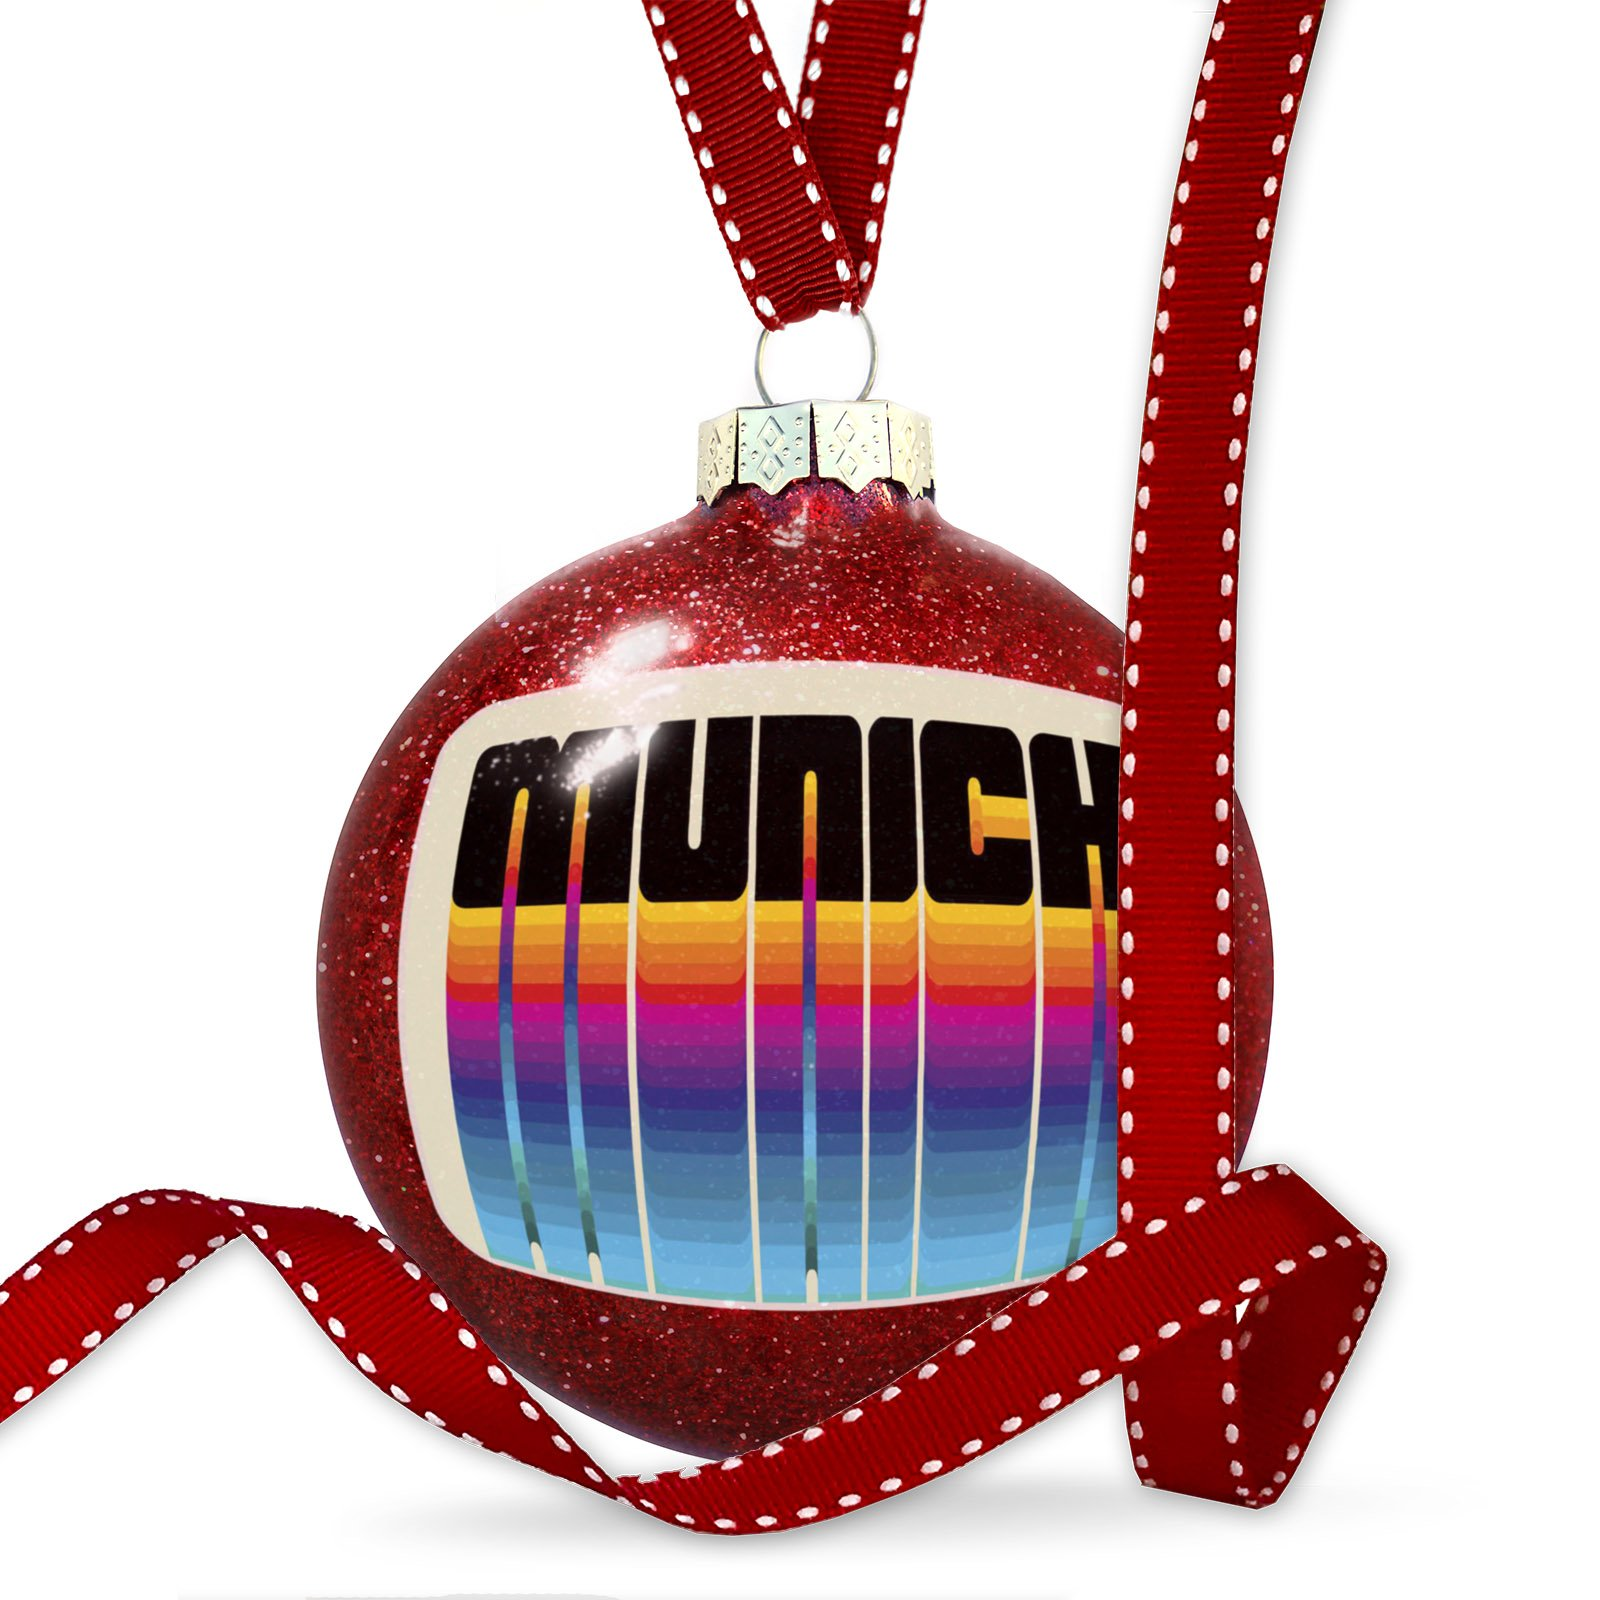 Christmas Decoration Retro Cites States Countries Munich Ornament by NEONBLOND (Image #1)